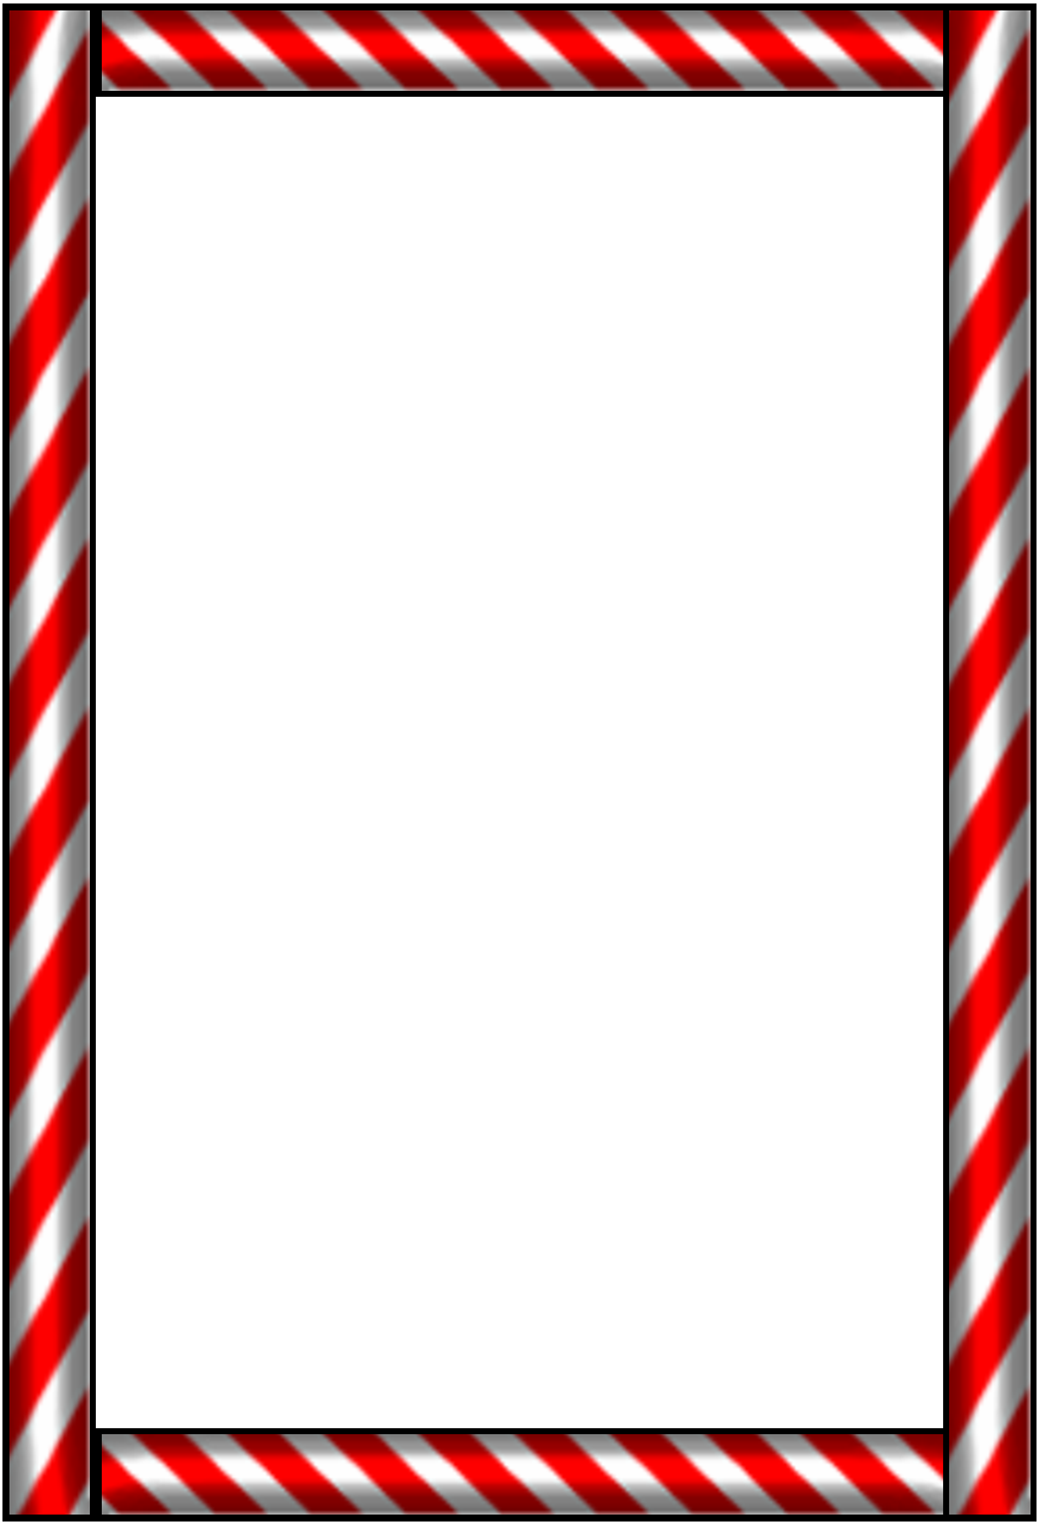 candy cane clip art borders.